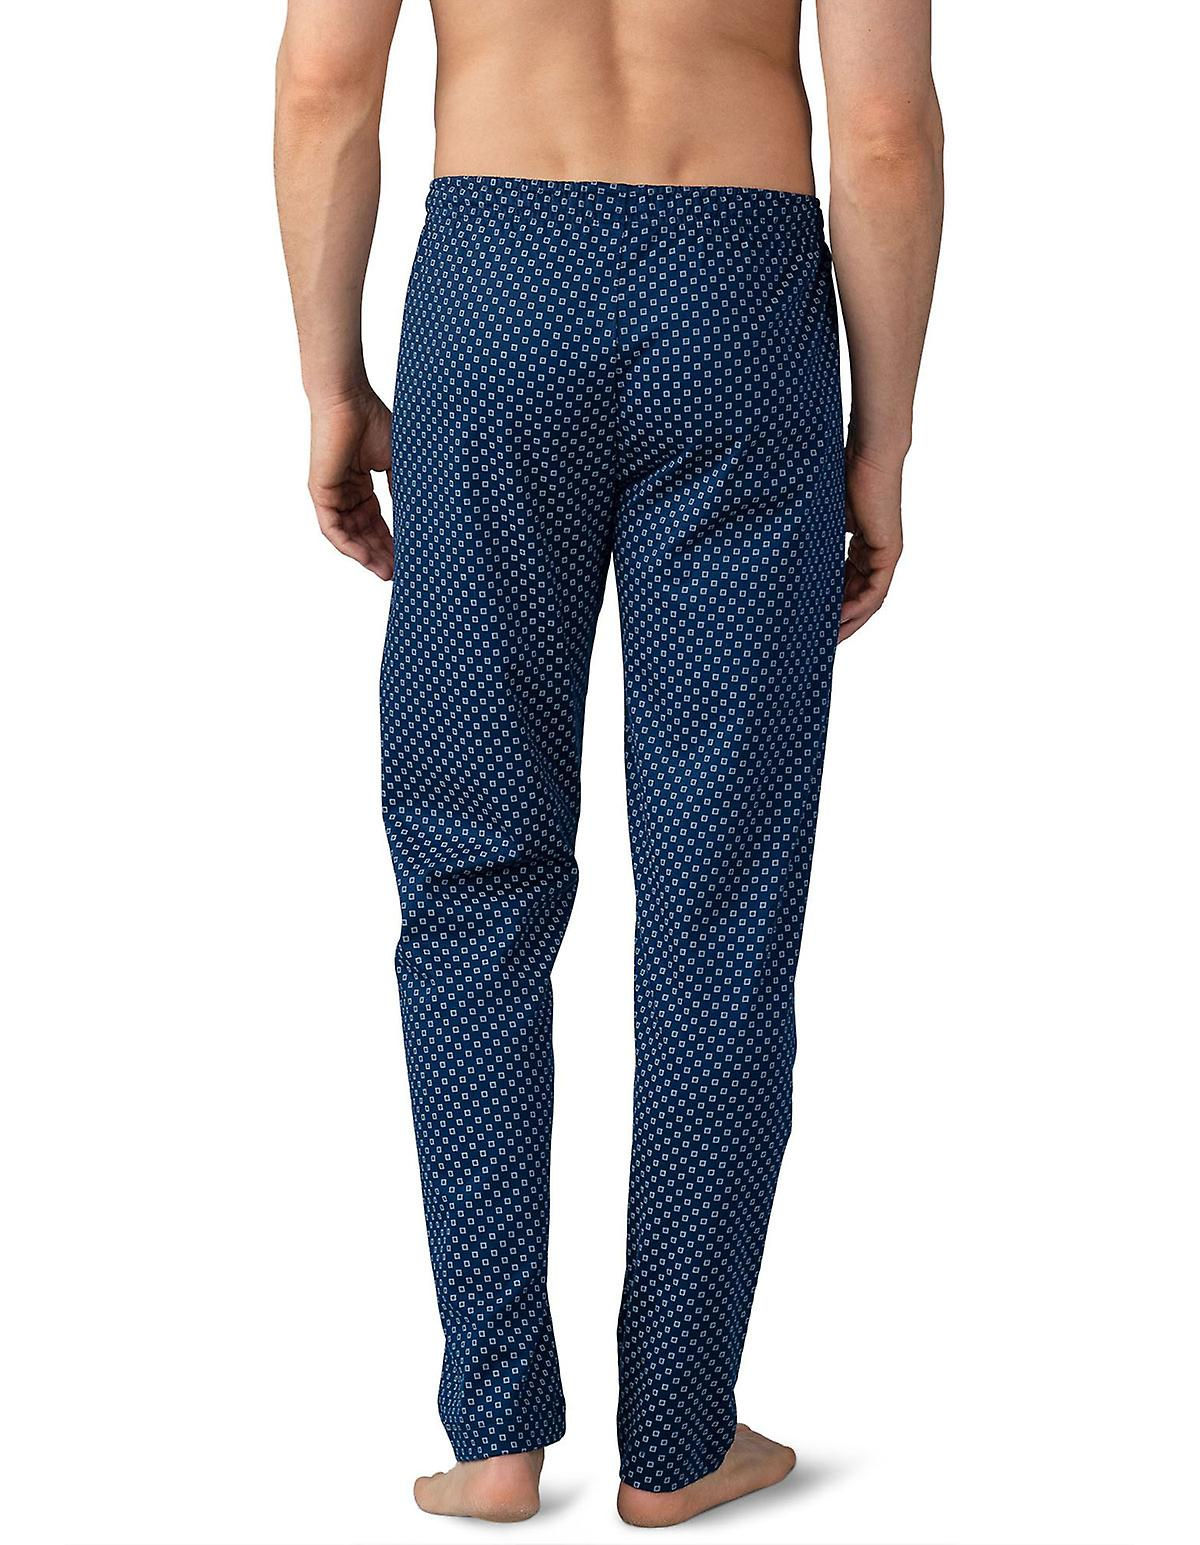 Mey Men 21460-664 Men&s Lounge Neptune bleu Tile Print Cotton Pajama Pyjama Pant